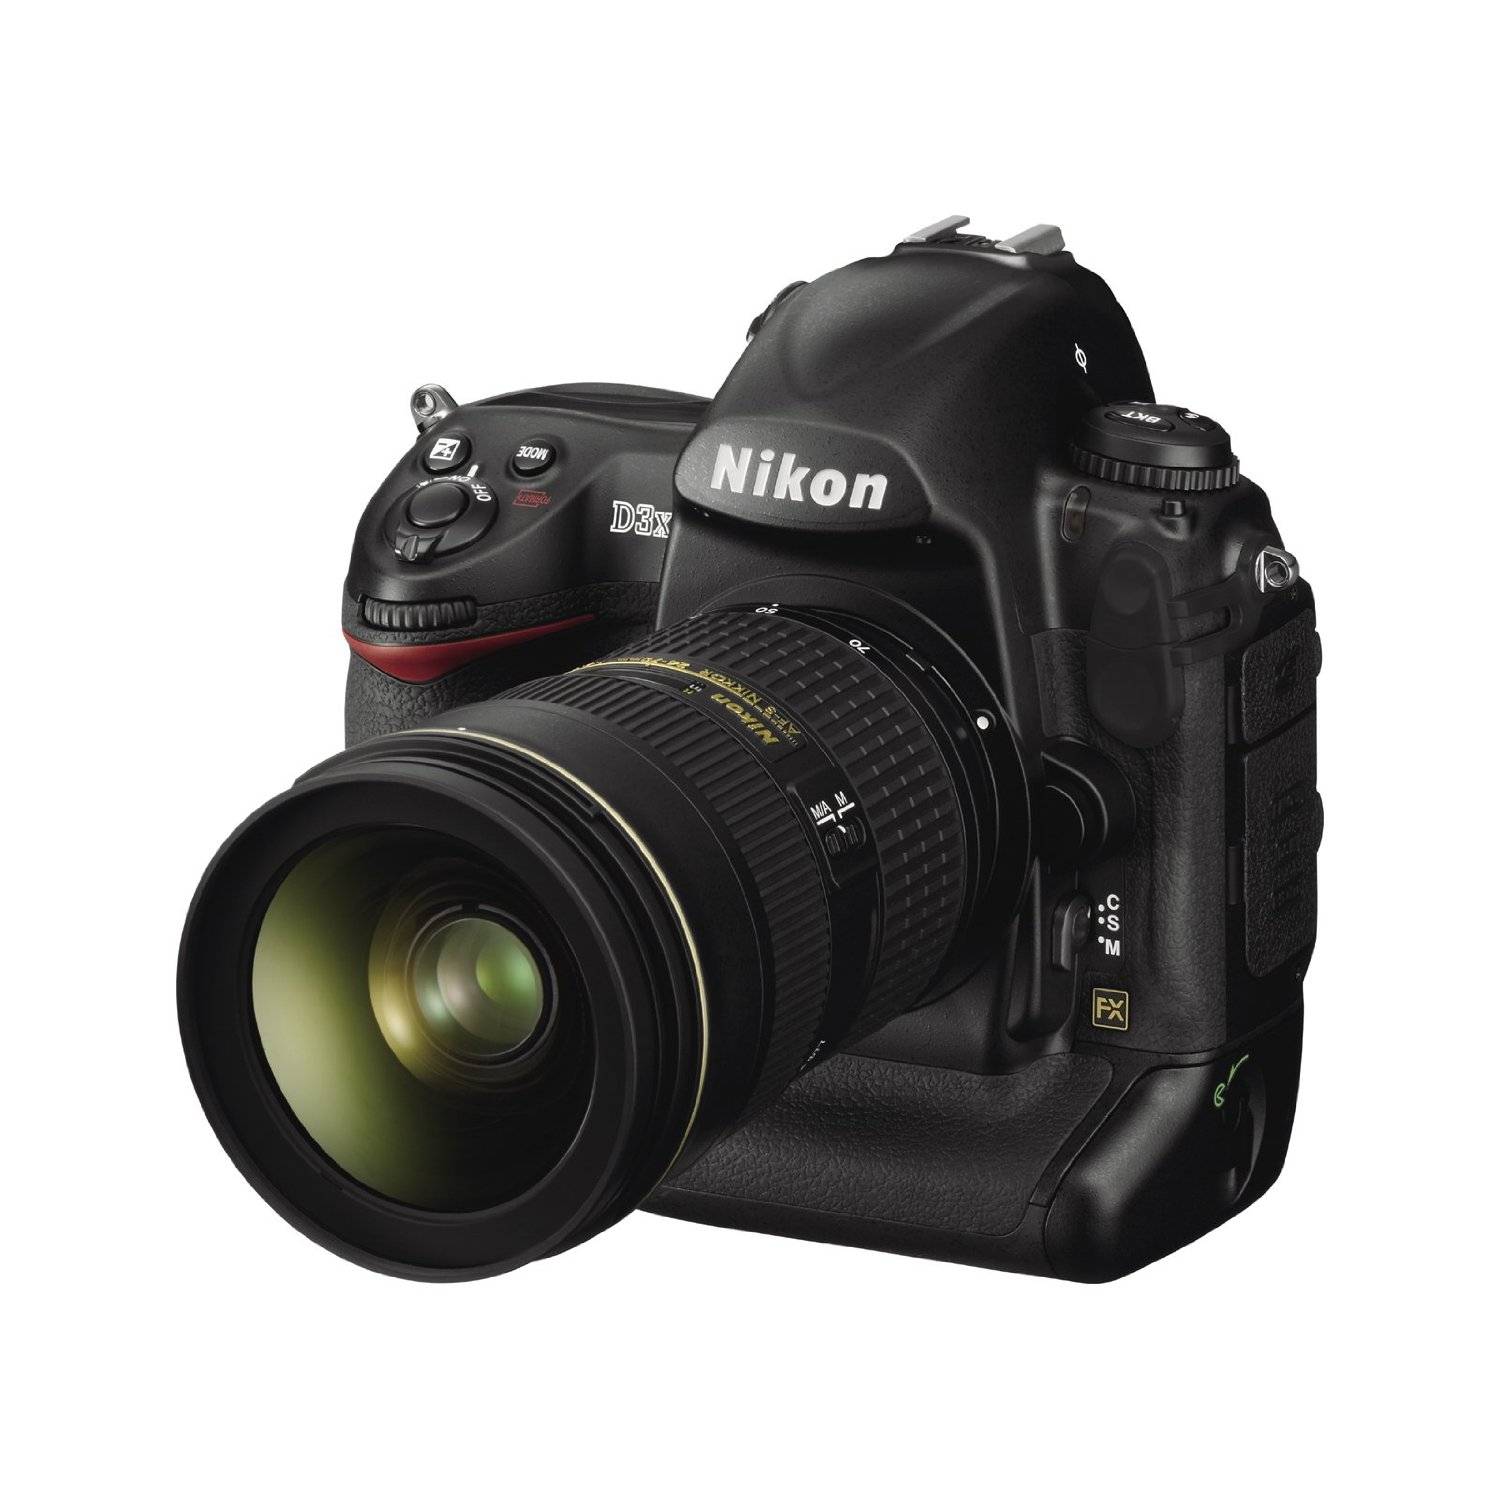 The new Nikon D3X get $700 price drop at Adorama , the price for Nikon